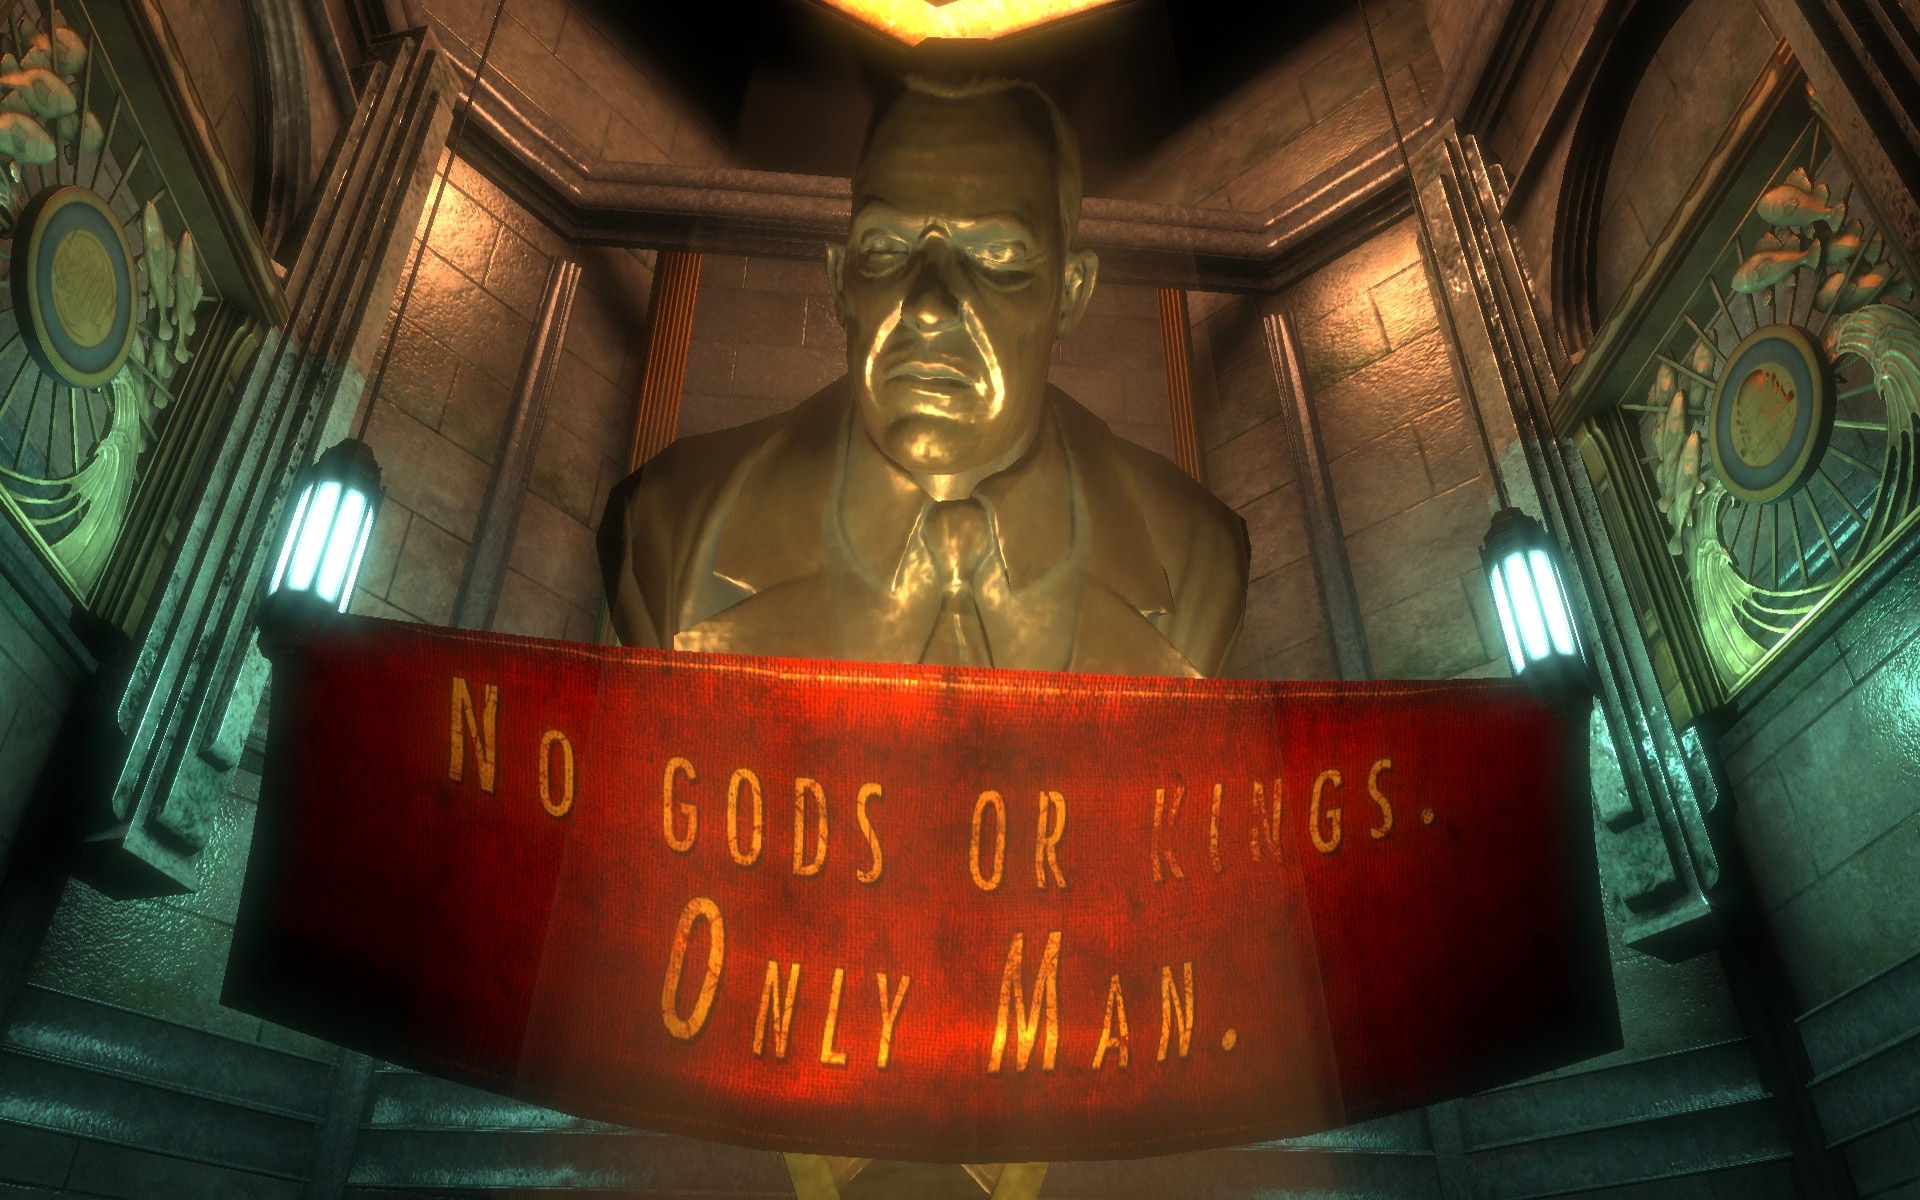 bioshock pc.0 Check Out BioShocks Iconic Opening Minutes Remastered